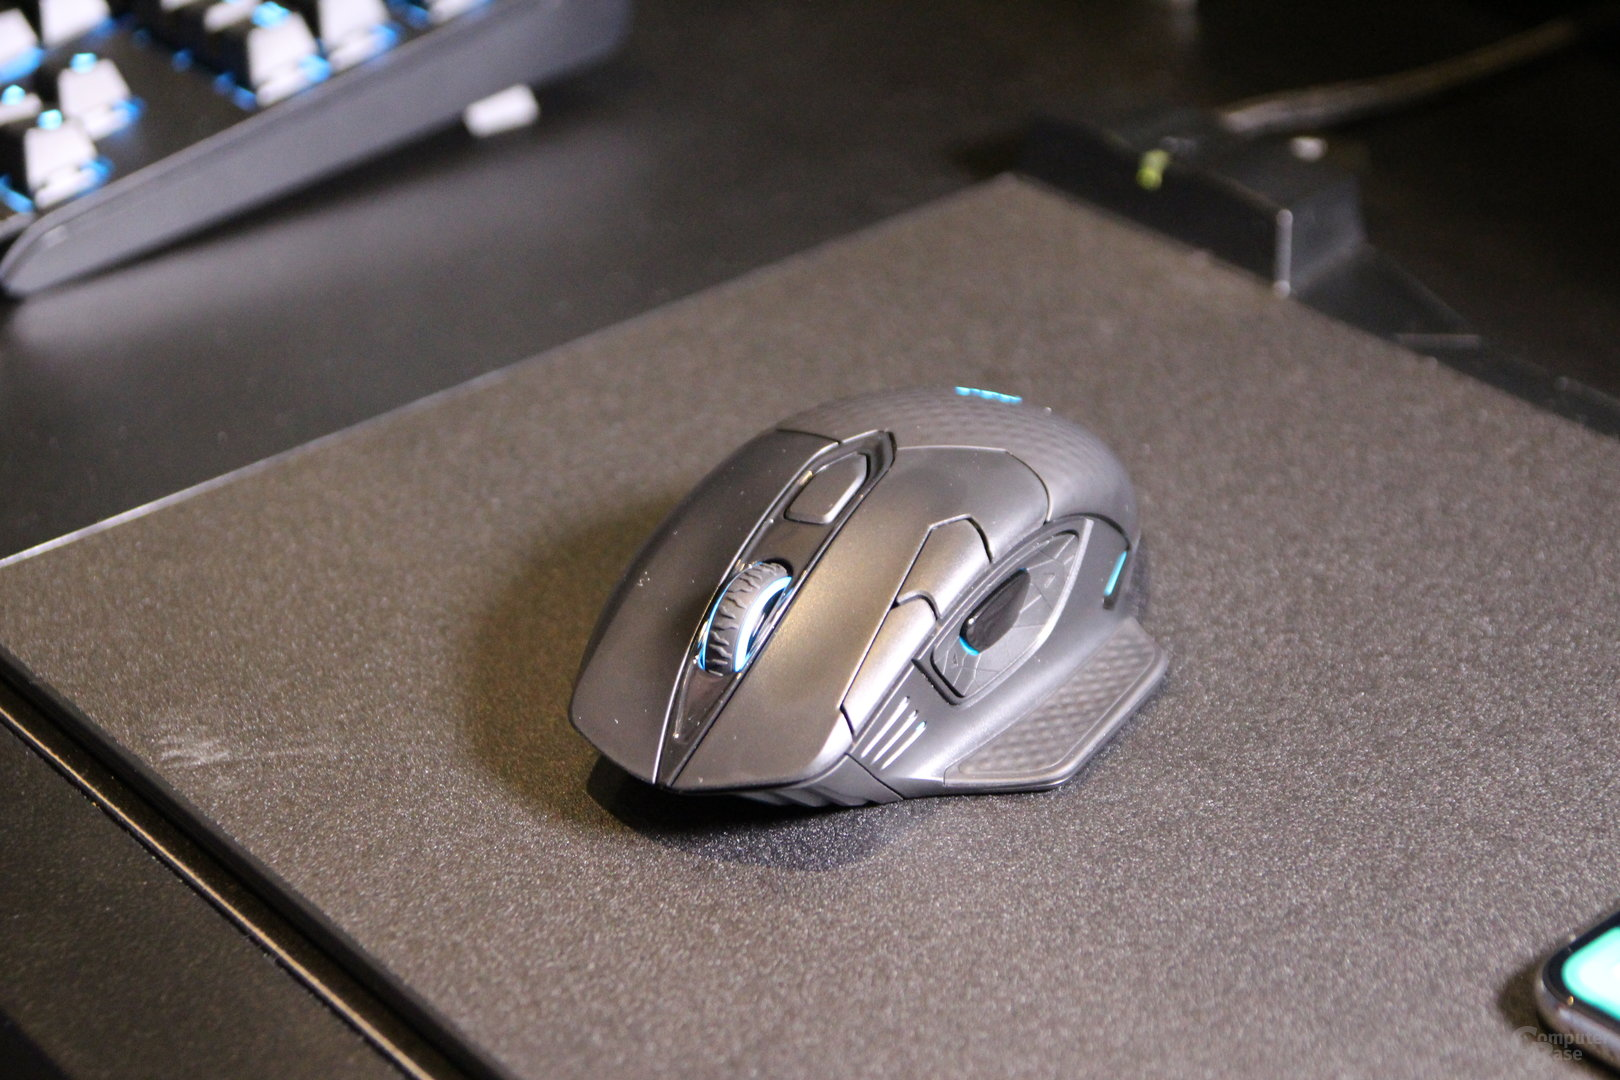 Corsair Dark Core SE Wireless Maus